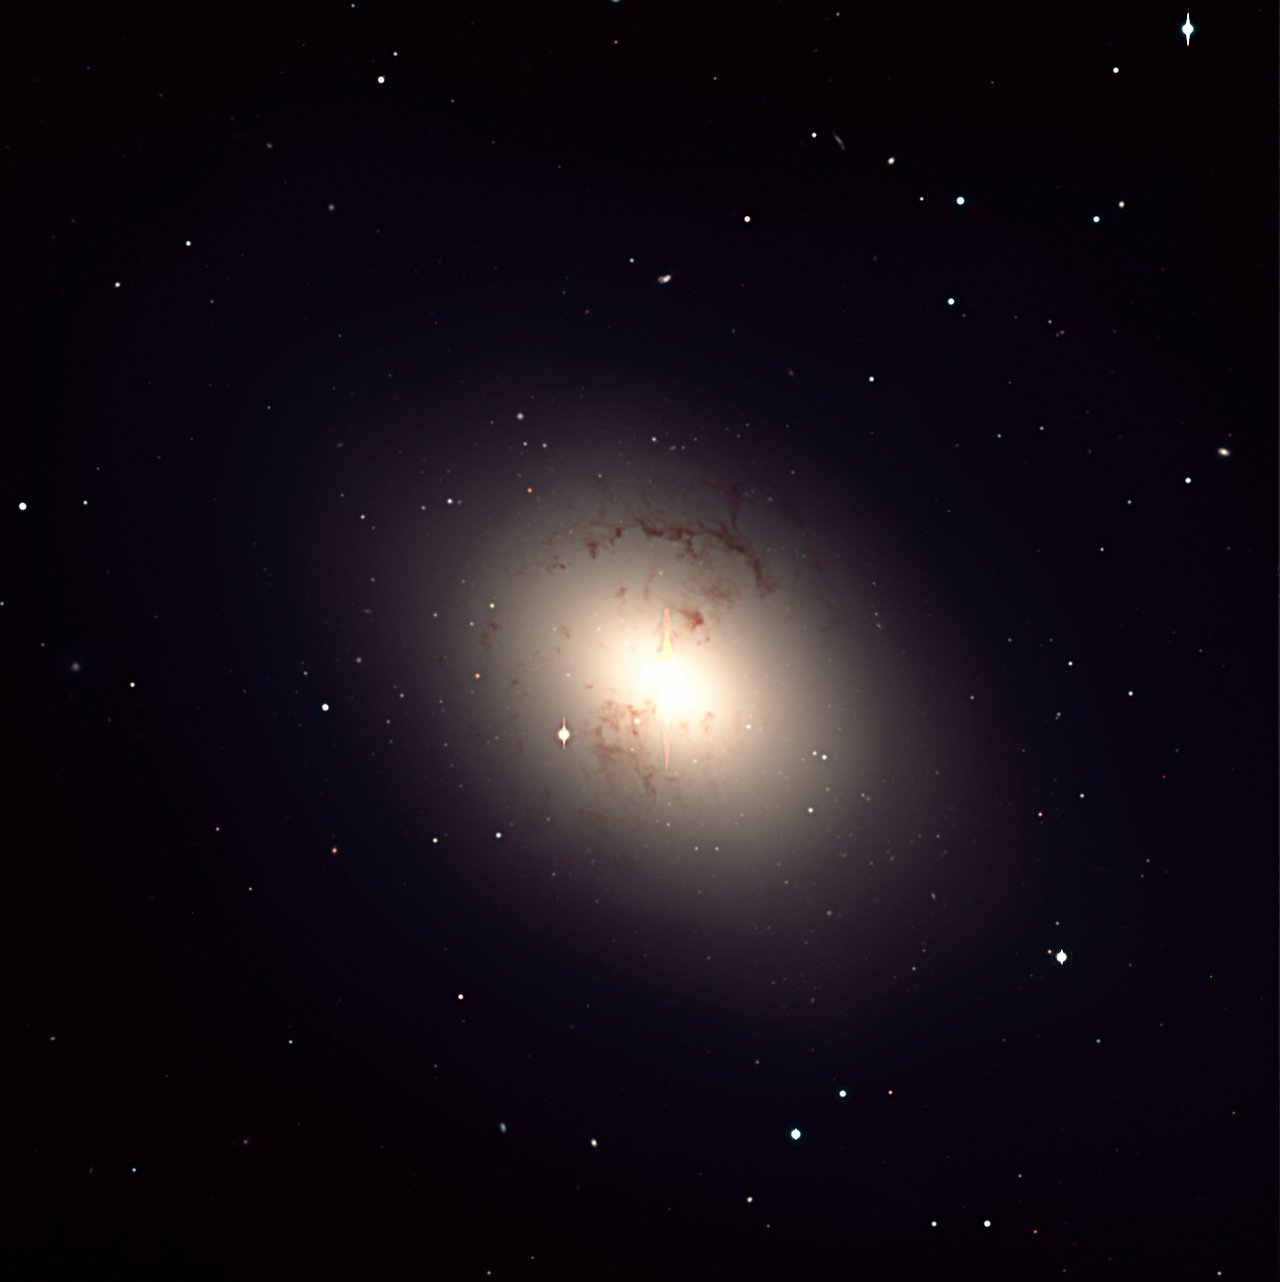 Giant elliptical galaxy NGC 1316 in Fornax Cluster  ESO